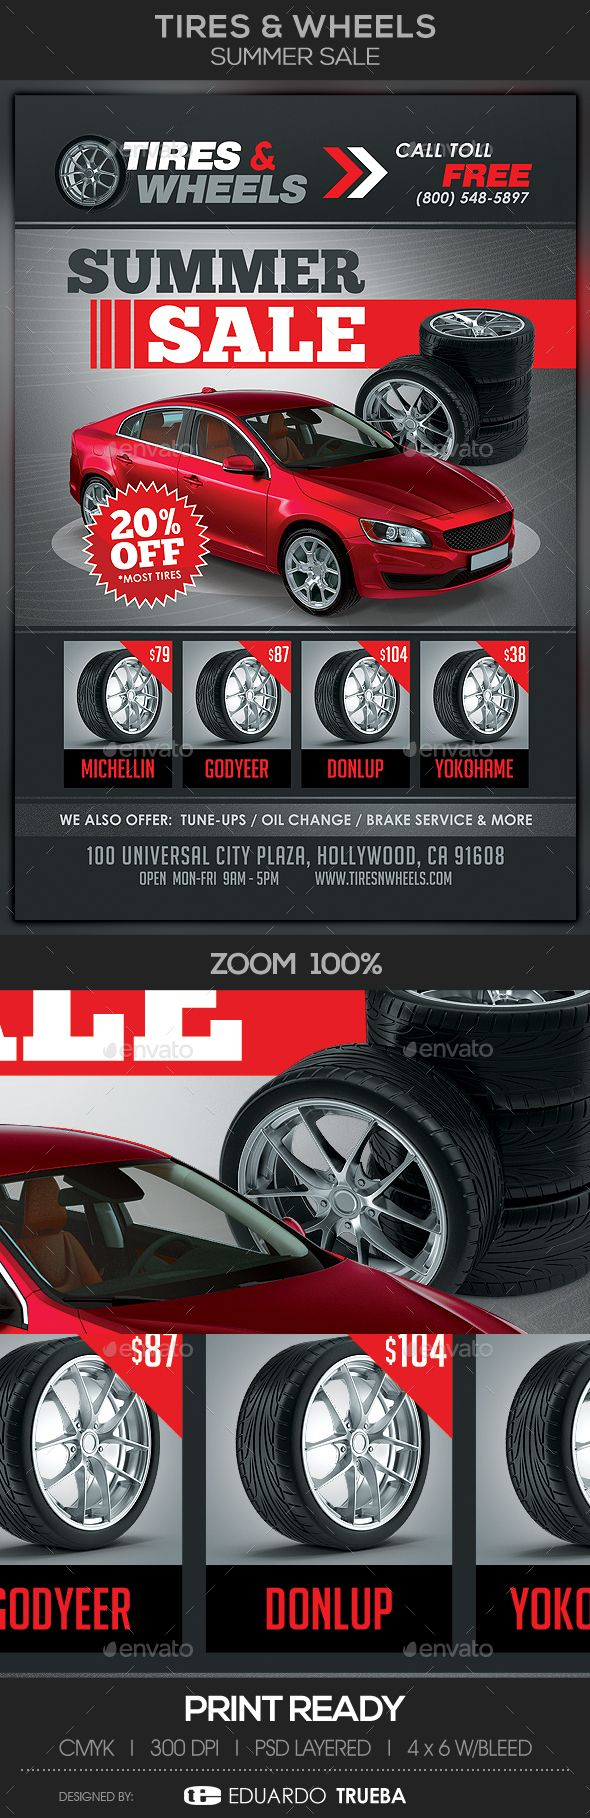 Tires & Wheels #Summer Sale #Flyer Template - Commerce Flyers Download here: https://graphicriver.net/item/tires-wheels-summer-sale-flyer-template/19478079?ref=alena994